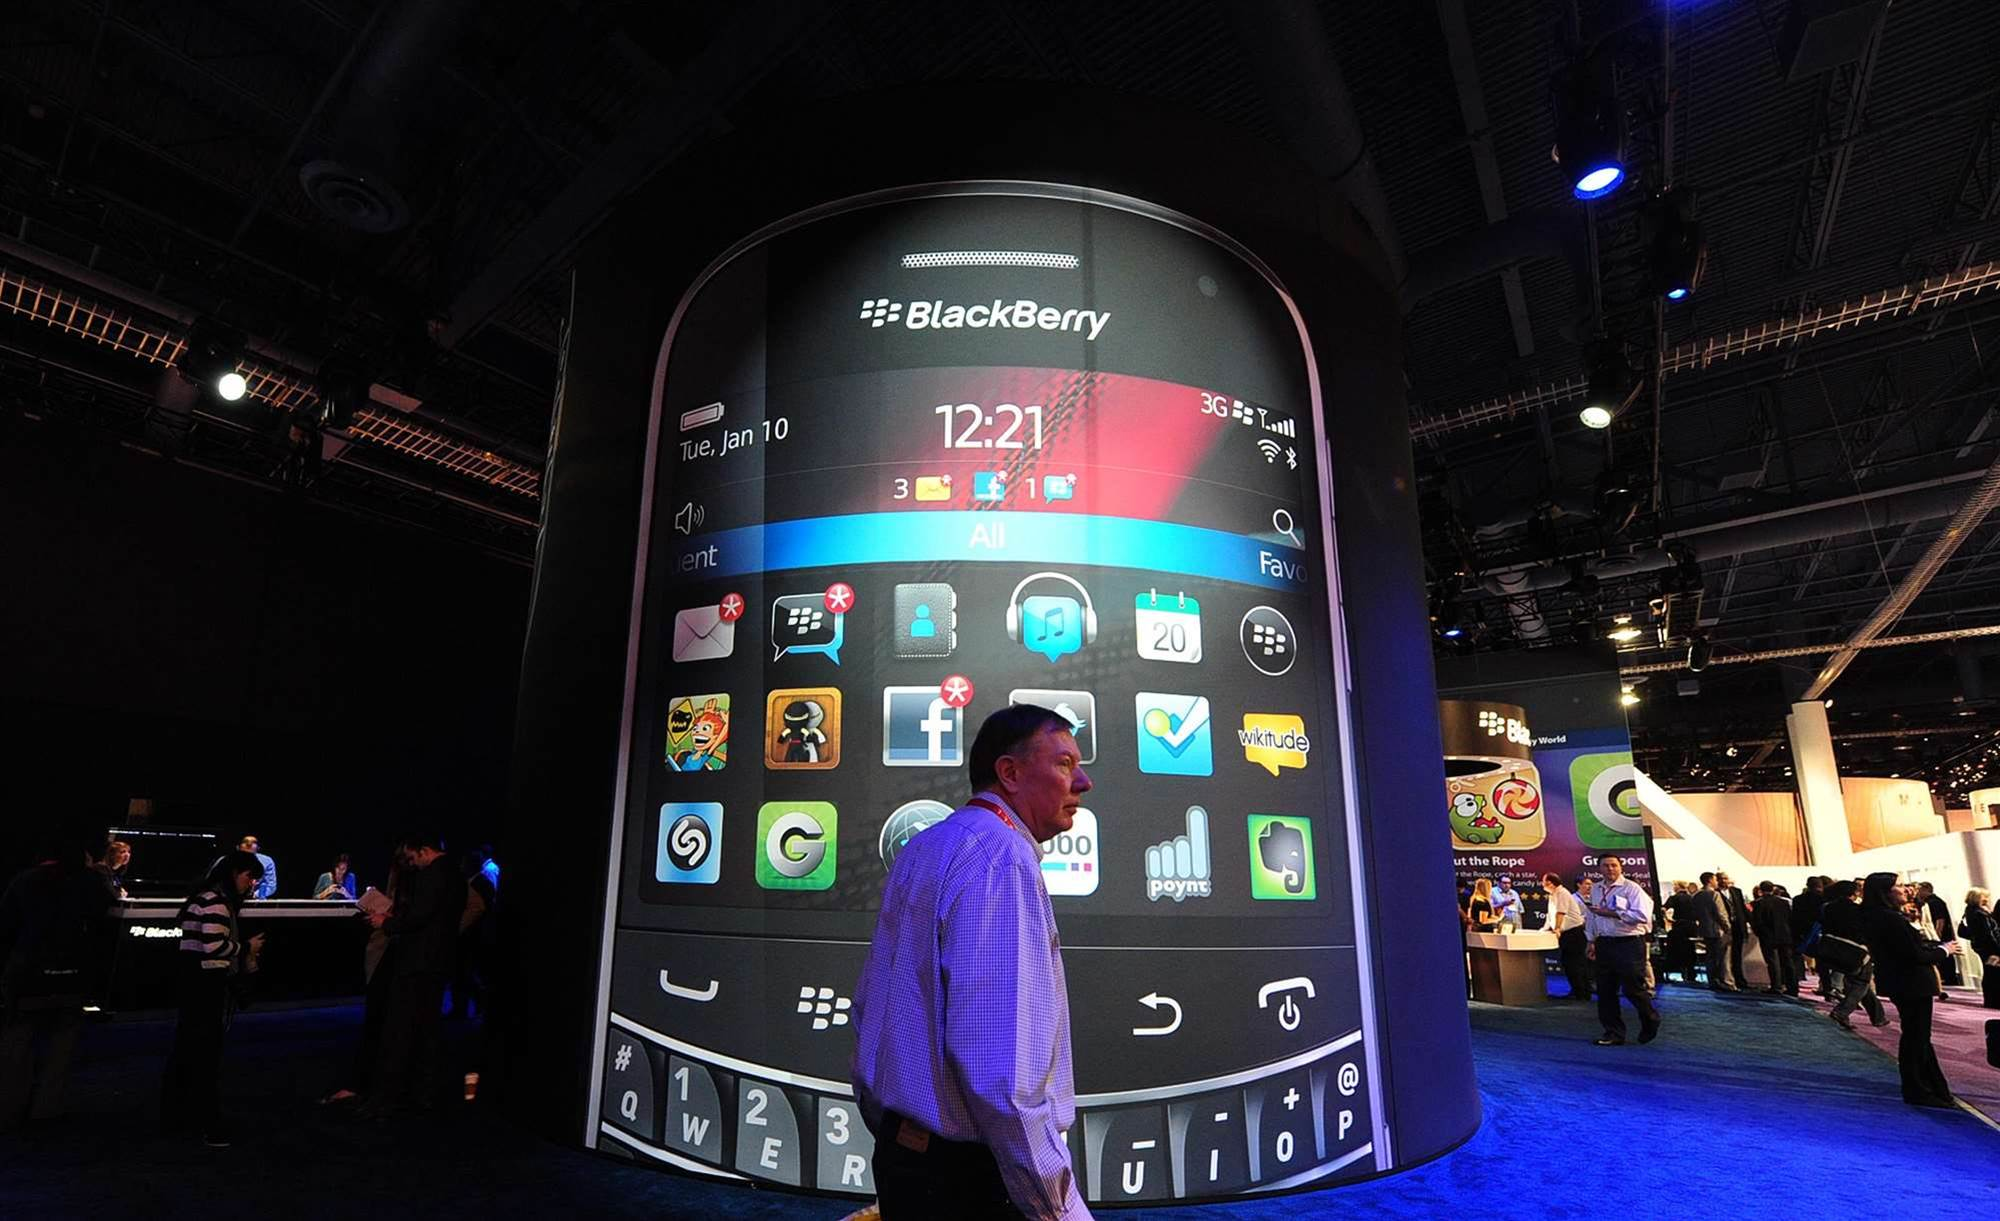 BlackBerry preparing to lay off more staff: report